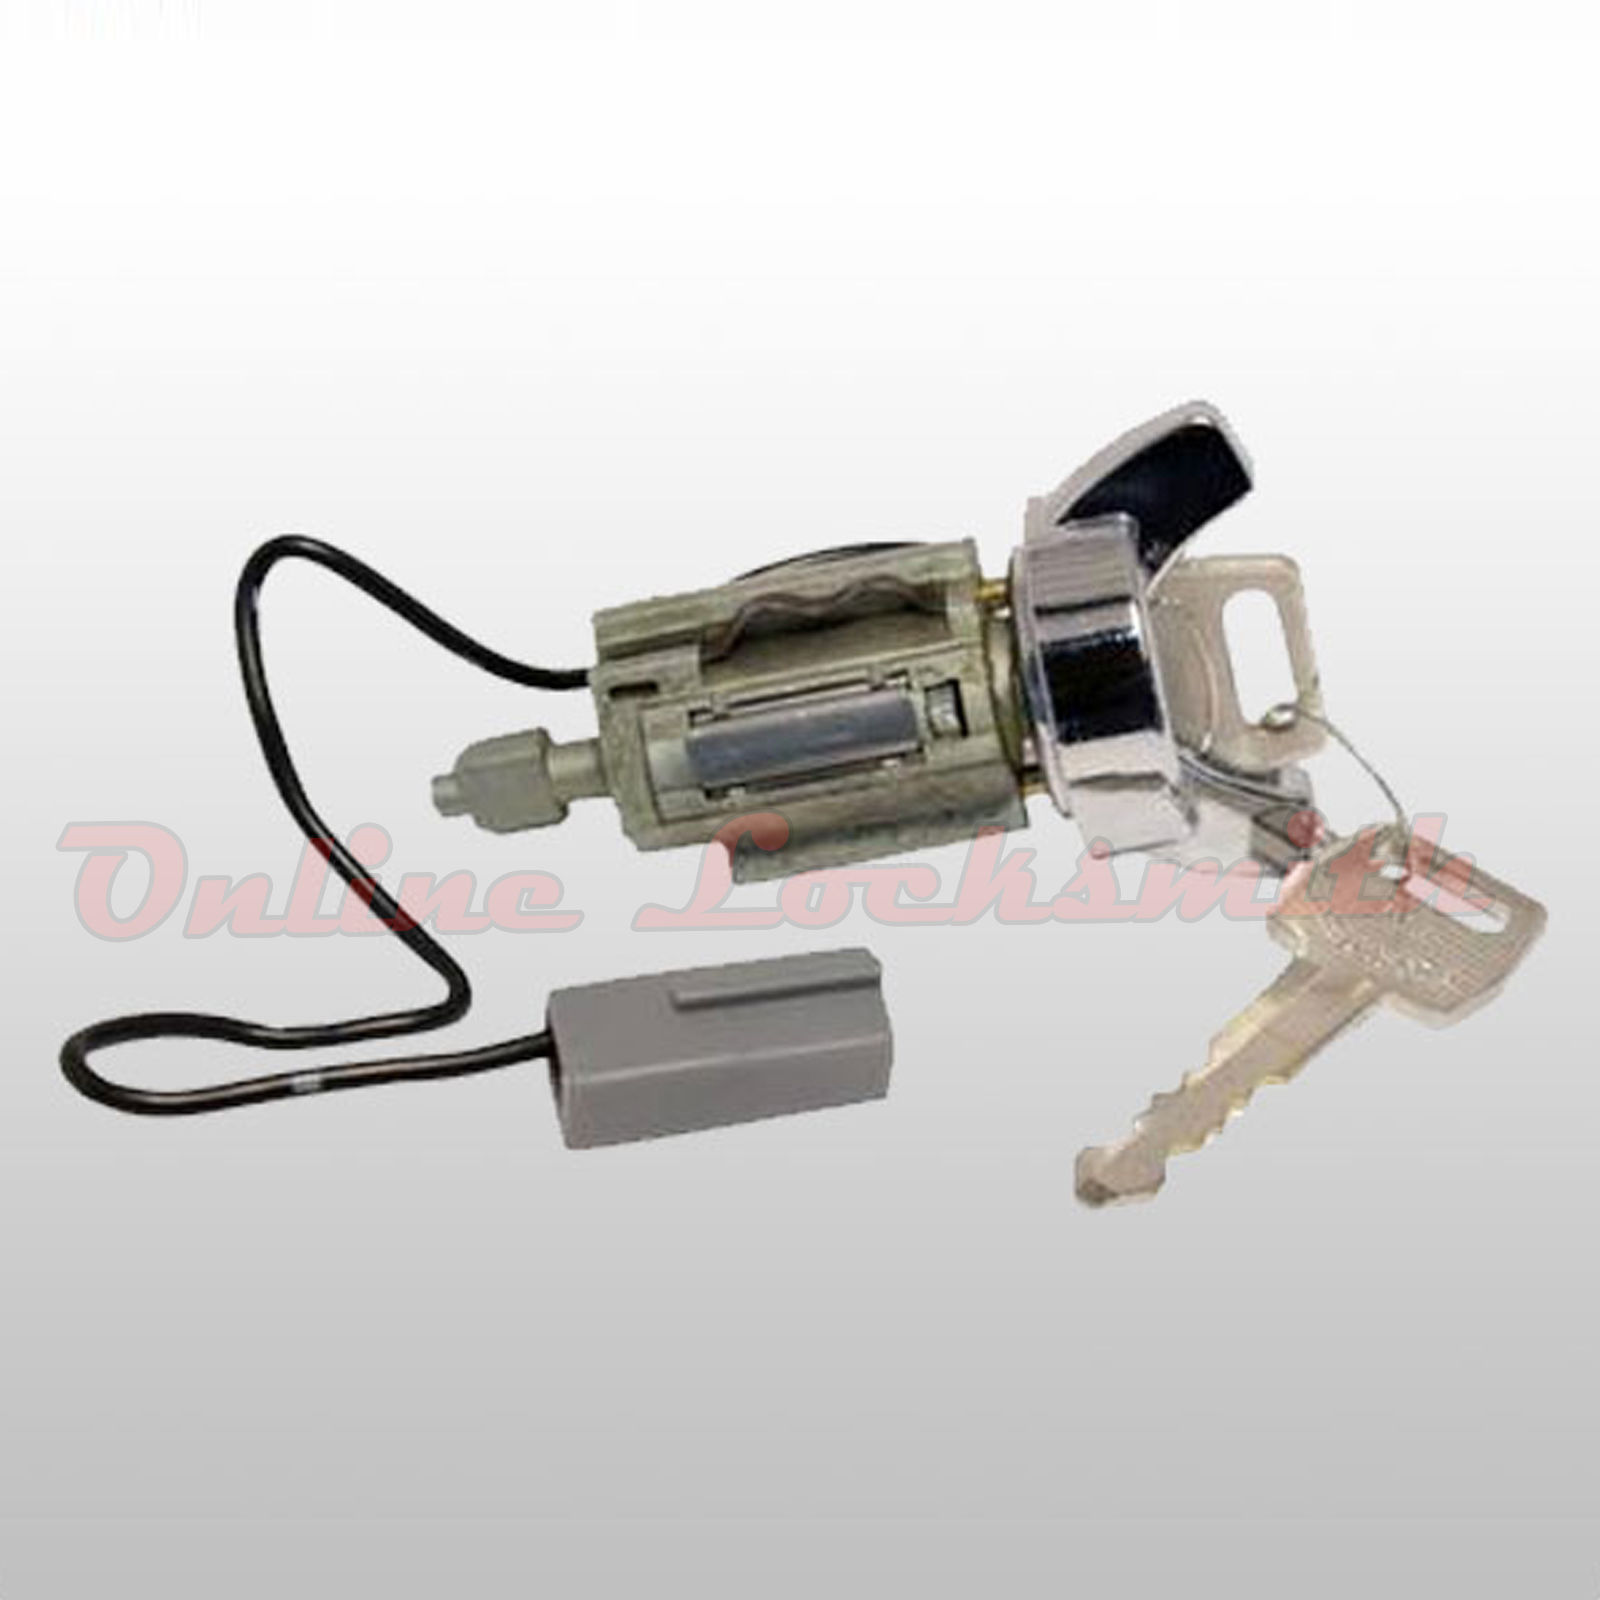 Dodge Dynasty 1993 Door Lock Kit: Replacement Ignition Switch Cylinder Lock For